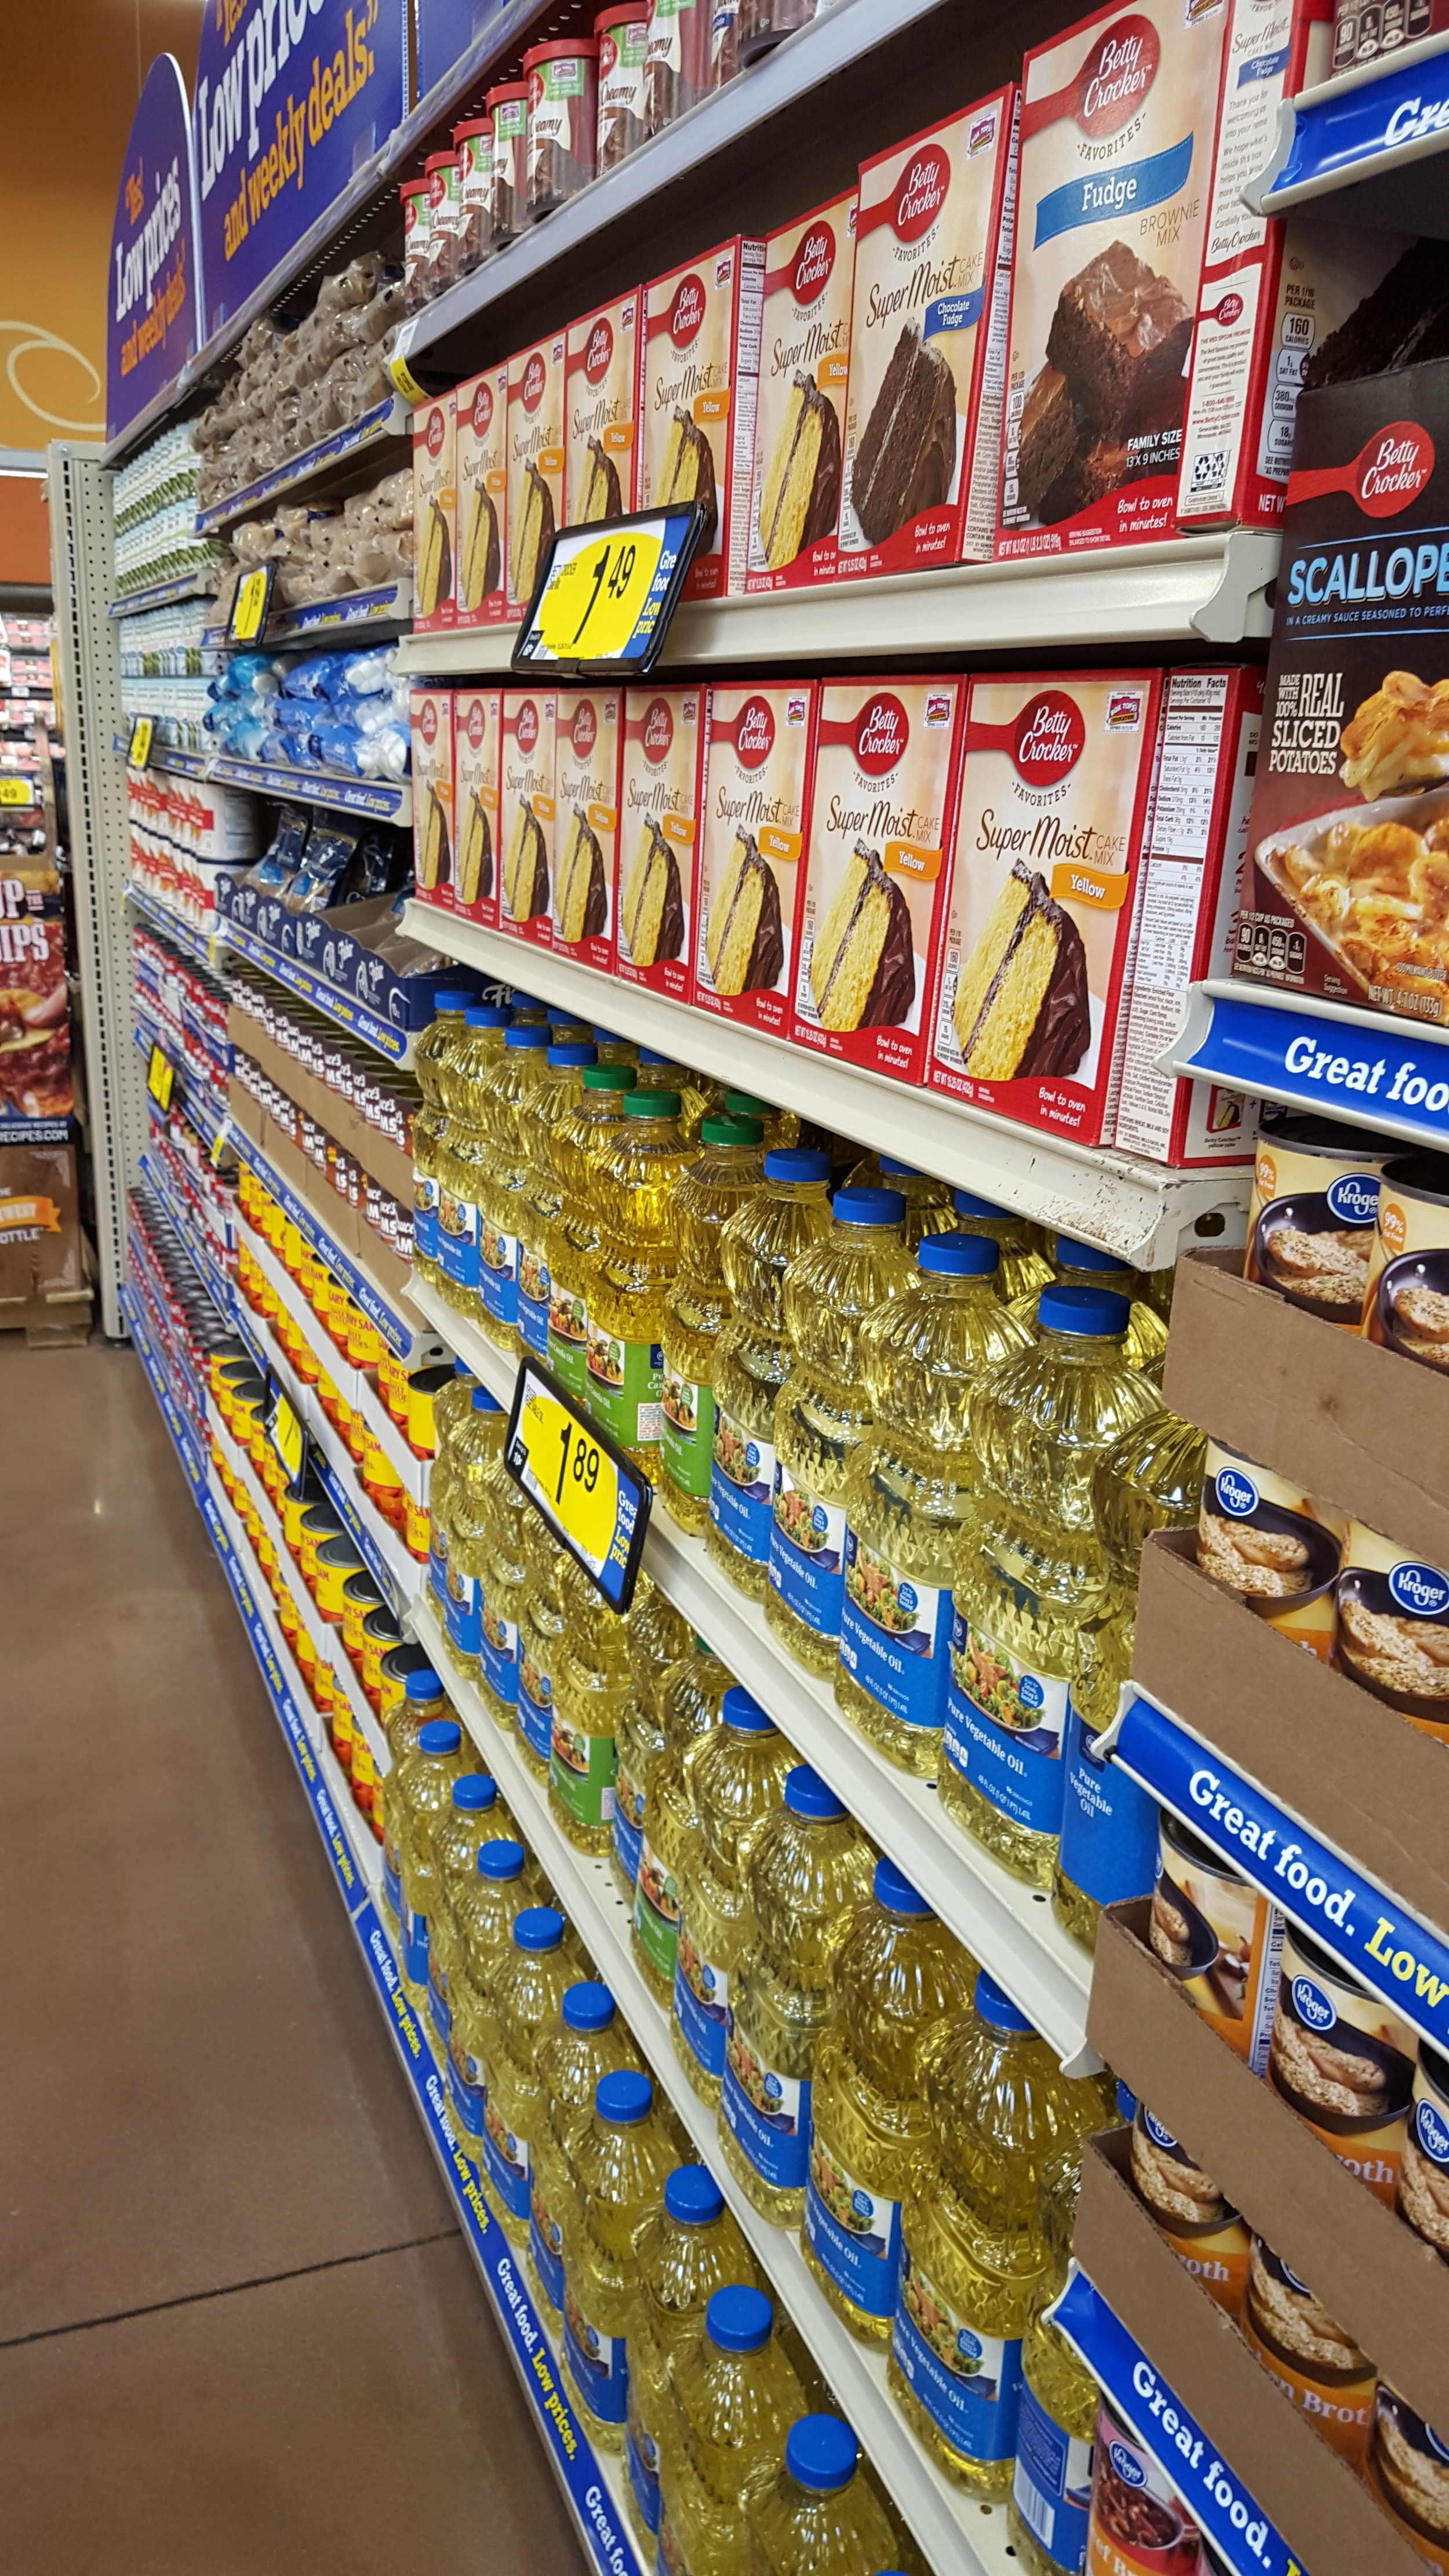 """Avoid the inside aisles where the """"factory fats"""", unpronounceable ingredients, and the imitations """"foods"""" are sold. We want the  real  stuff!"""